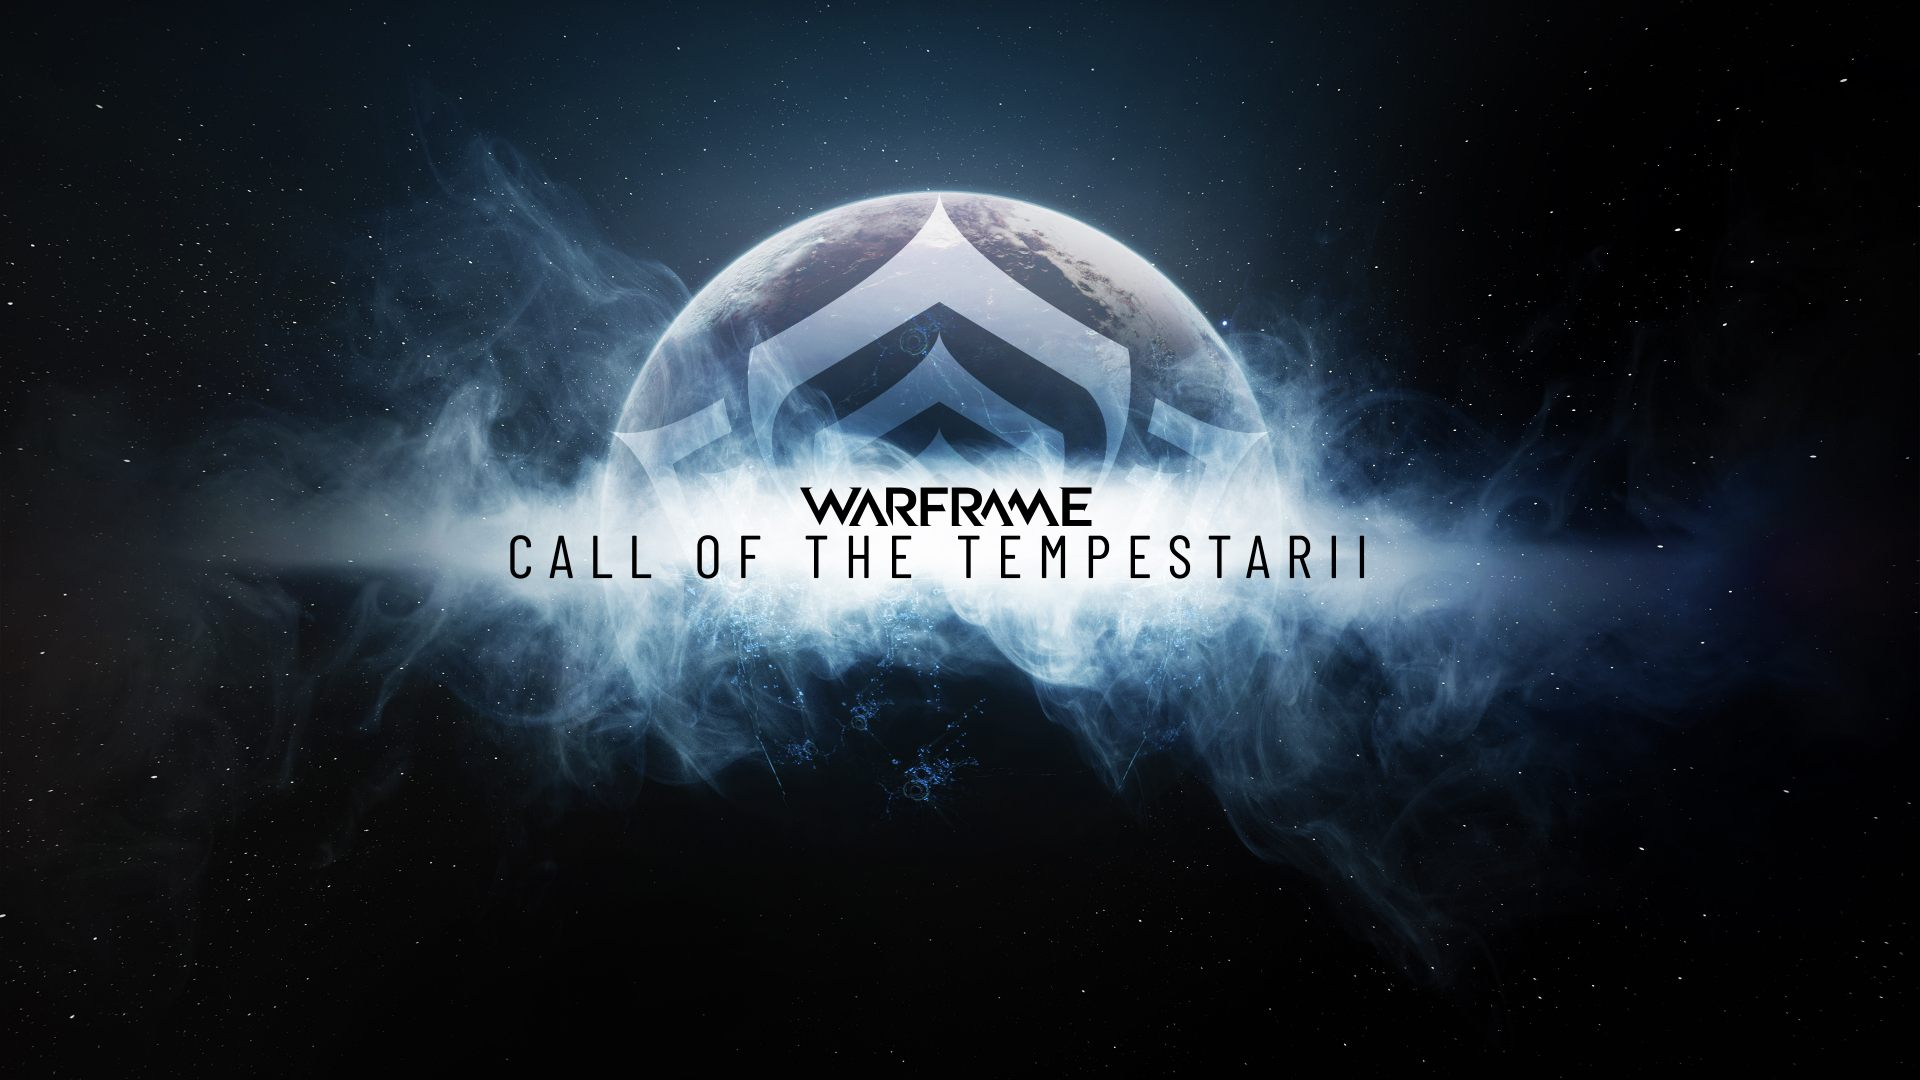 Warframe Call of the Tempestarii